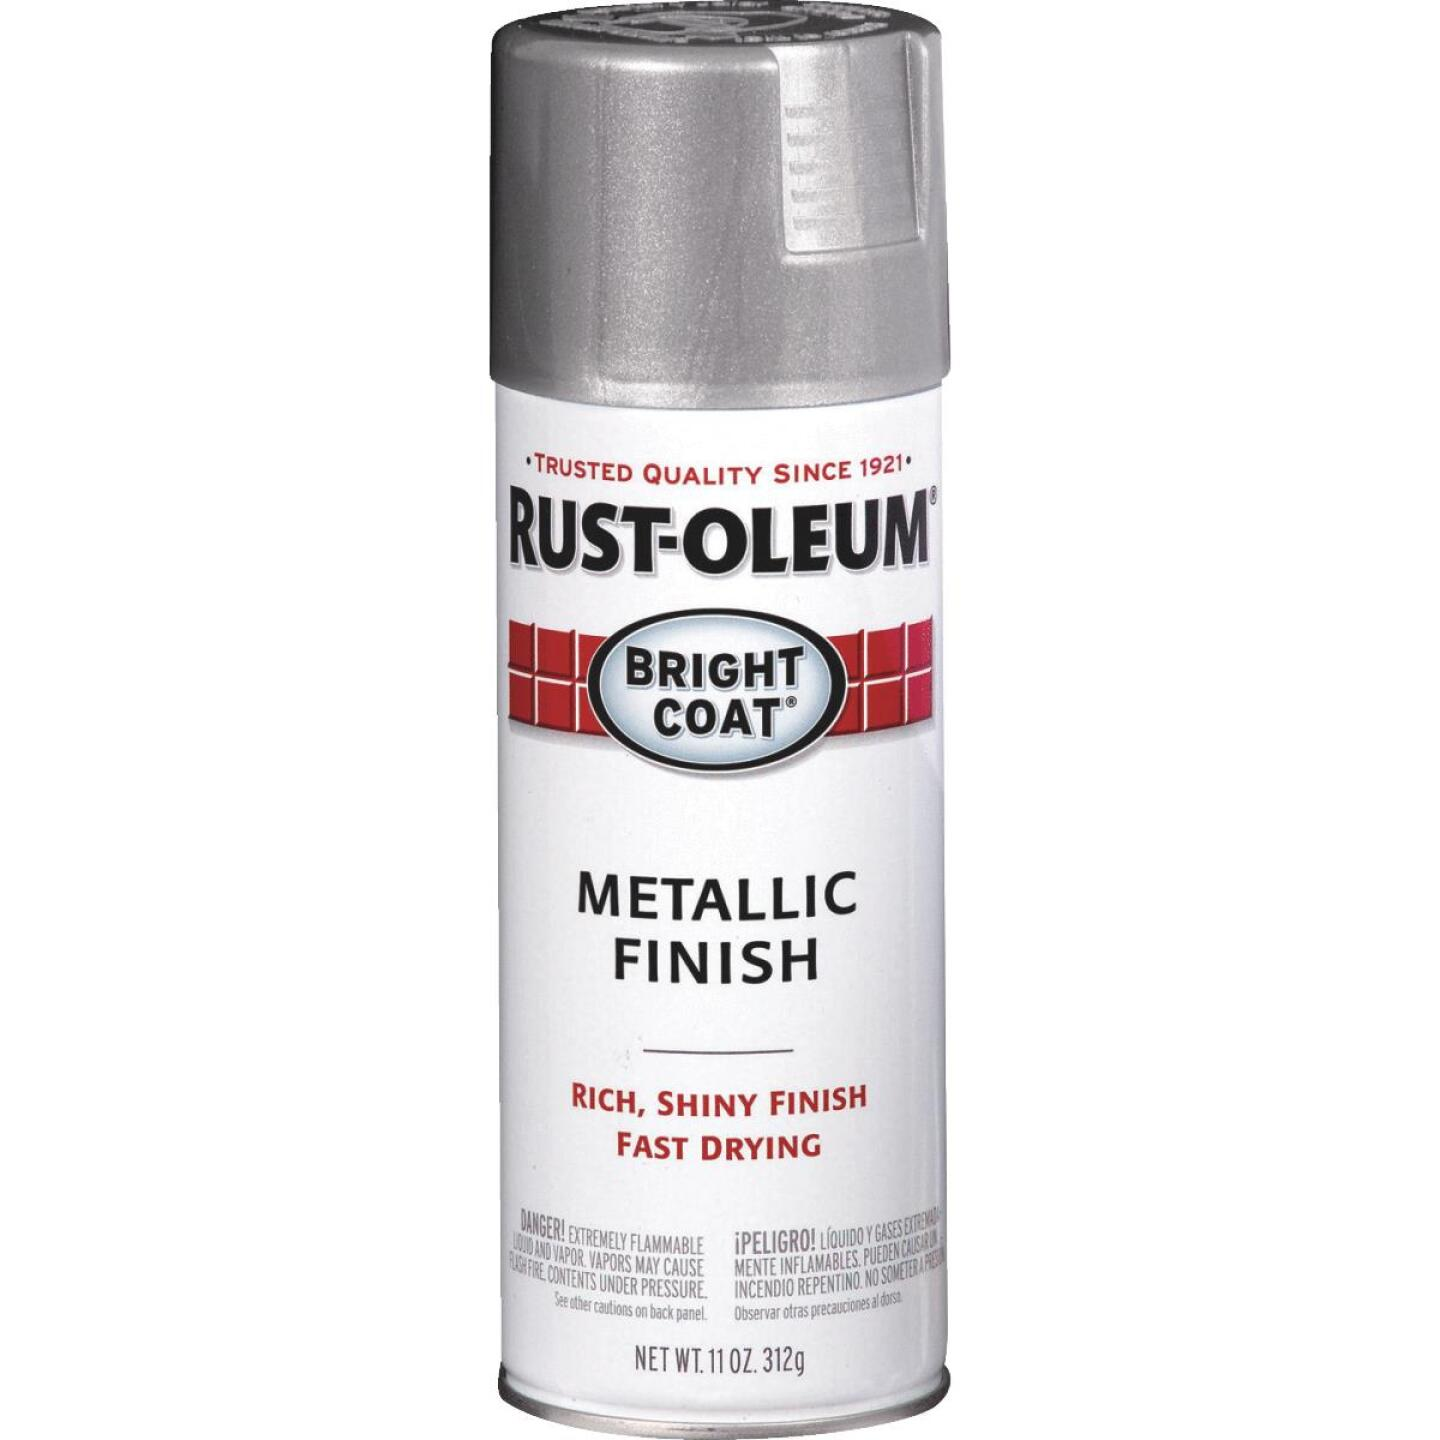 Rust-Oleum Bright Coat Bright Aluminum Gloss 11 Oz. Anti-Rust Spray Paint Image 1